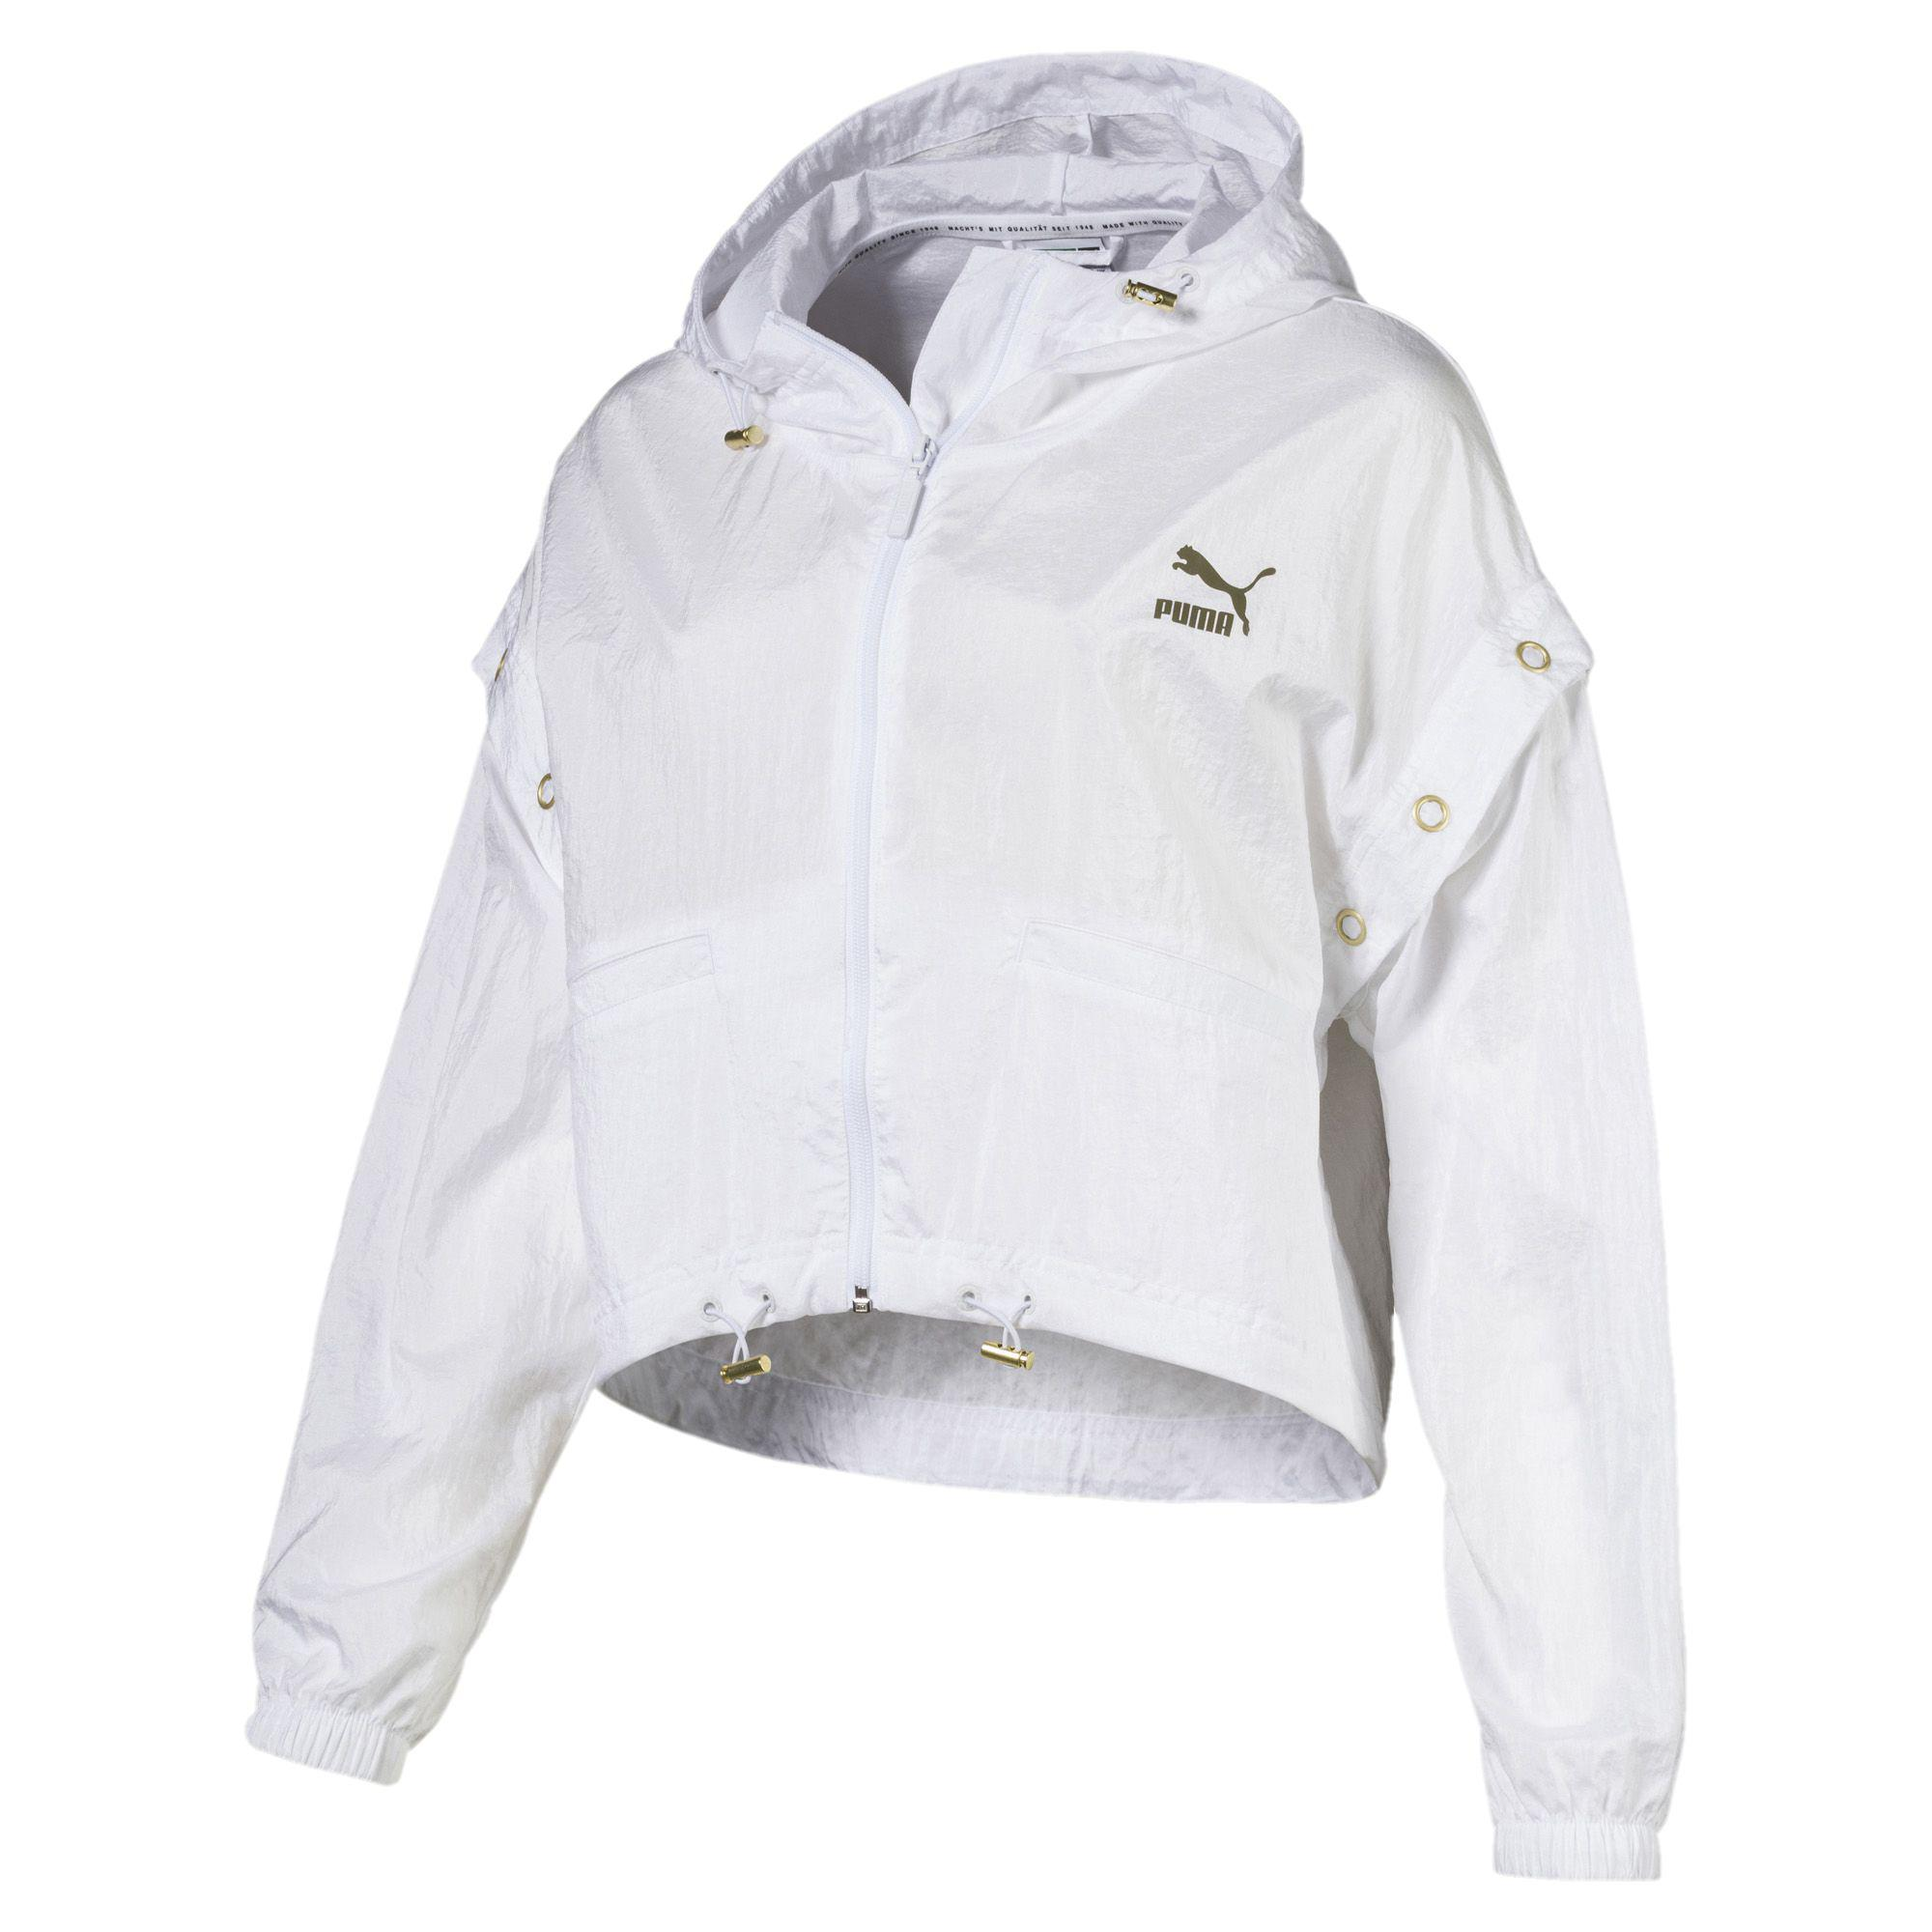 f5196c1e75e3 Lyst - PUMA Retro Windrunner Zip-up Women s Hooded Jacket in White